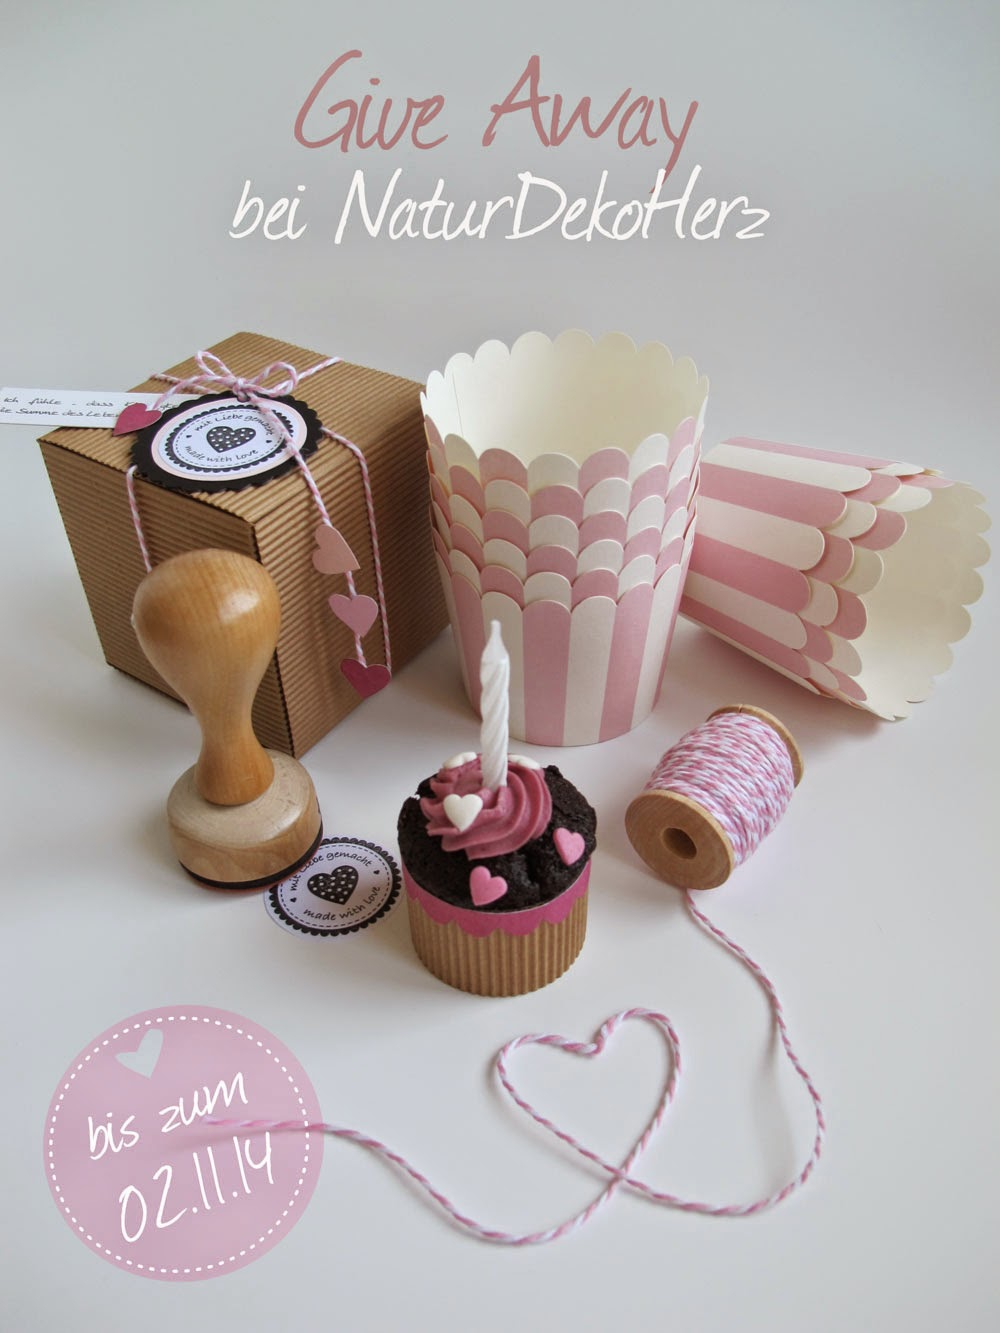 Giveaway bei Christine bis 02.11.2014